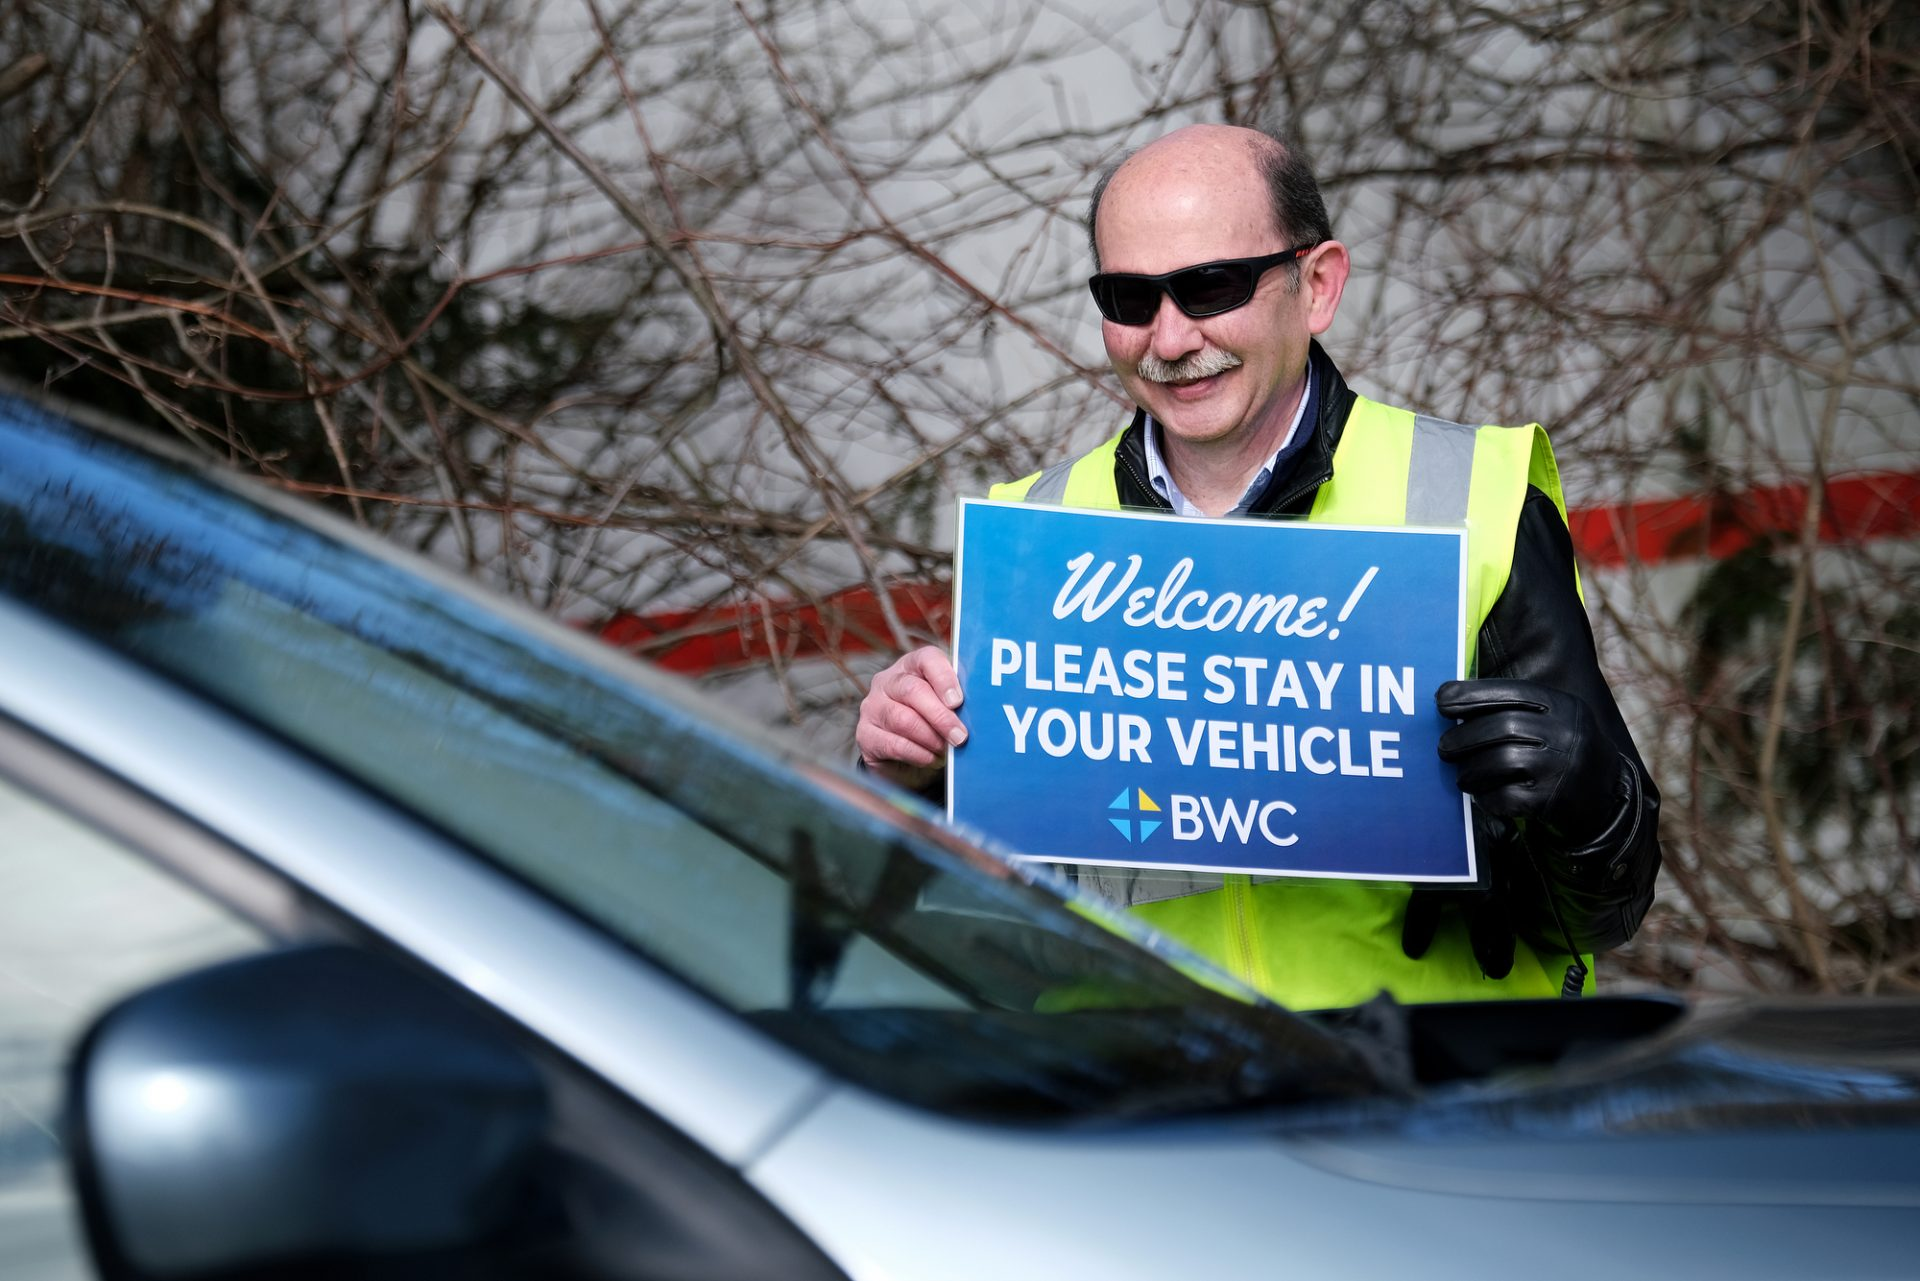 Pastor Dwight Addington holds a sign while parishioners arrive as Bethany Wesleyan Church holds Sunday worship service at Becky's Drive-In in Northampton County